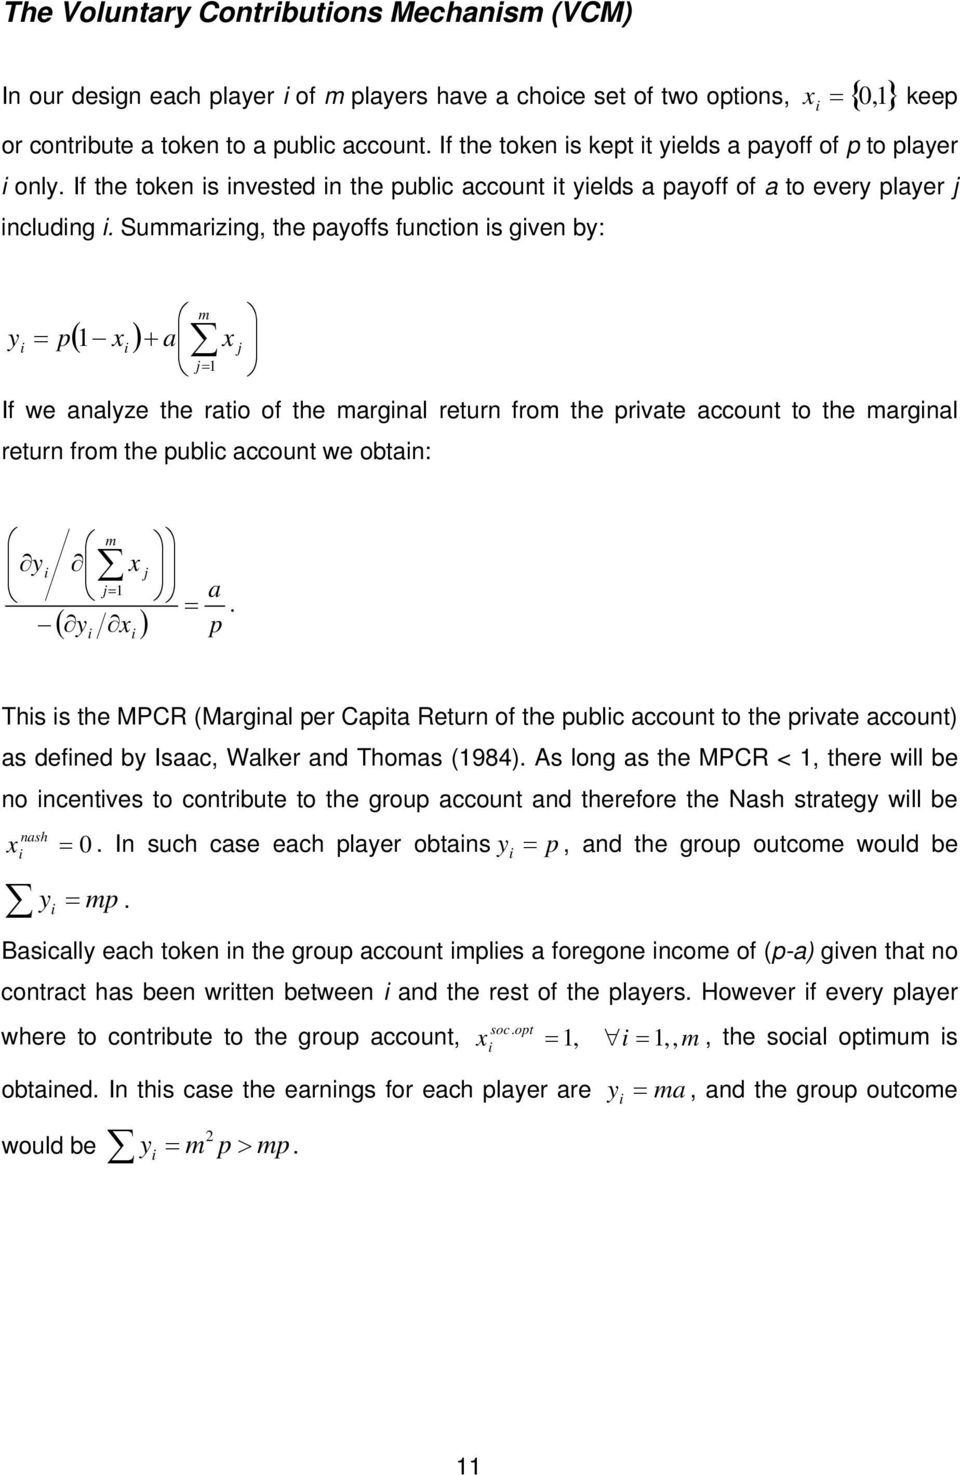 Summarizing, the payoffs function is given by: i y i m = p ( 1 x ) + i a x j j= 1 If we analyze the ratio of the marginal return from the private account to the marginal return from the public